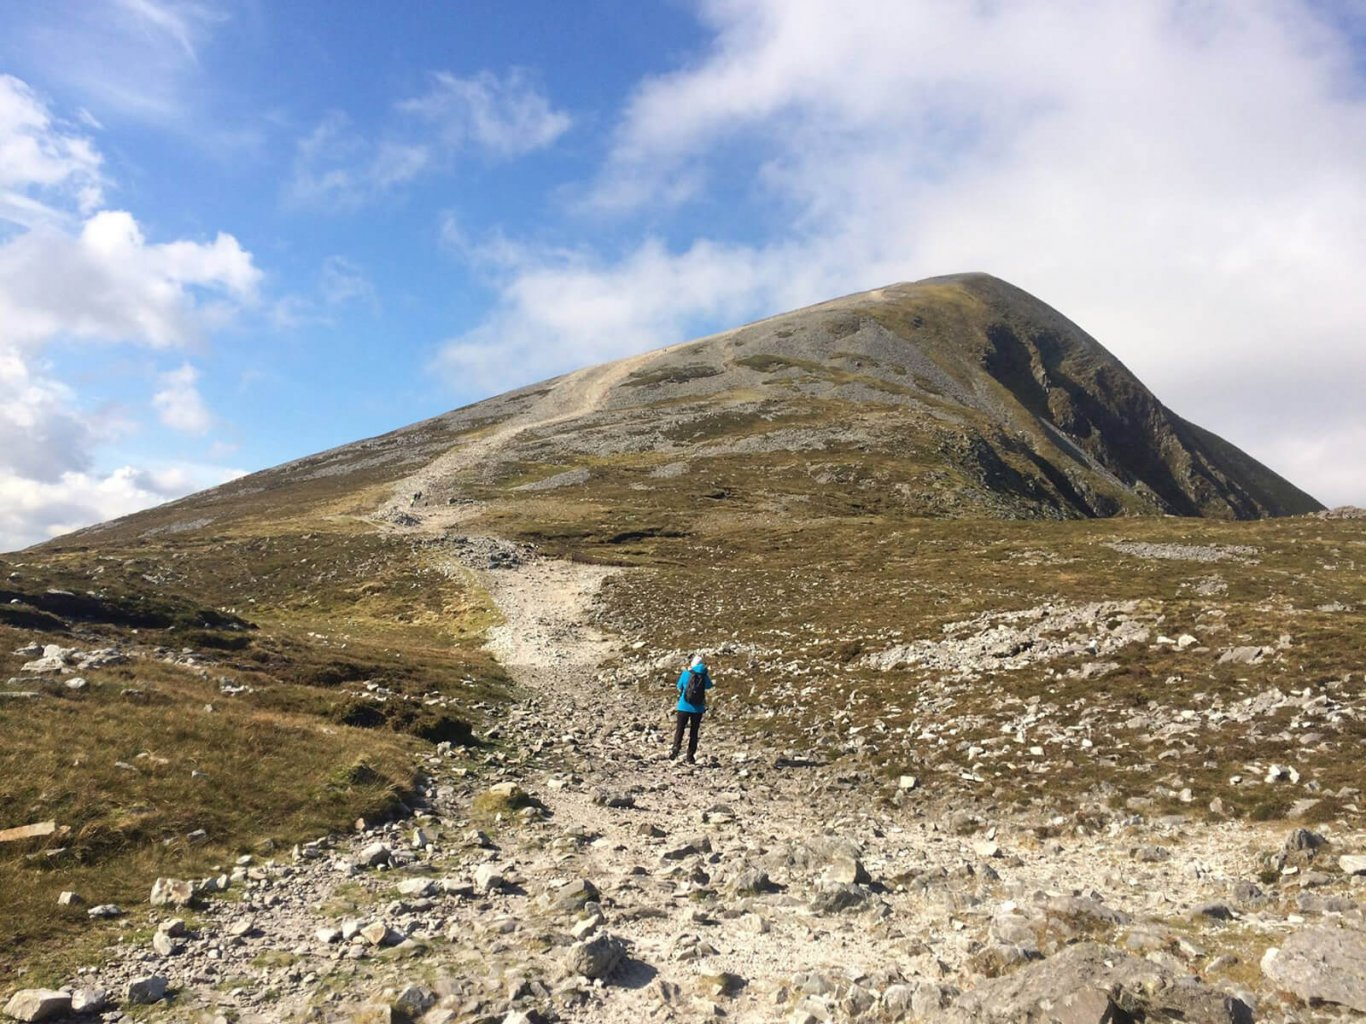 Tour guest hiking in Ireland at Croagh Patrick mountain in Mayo